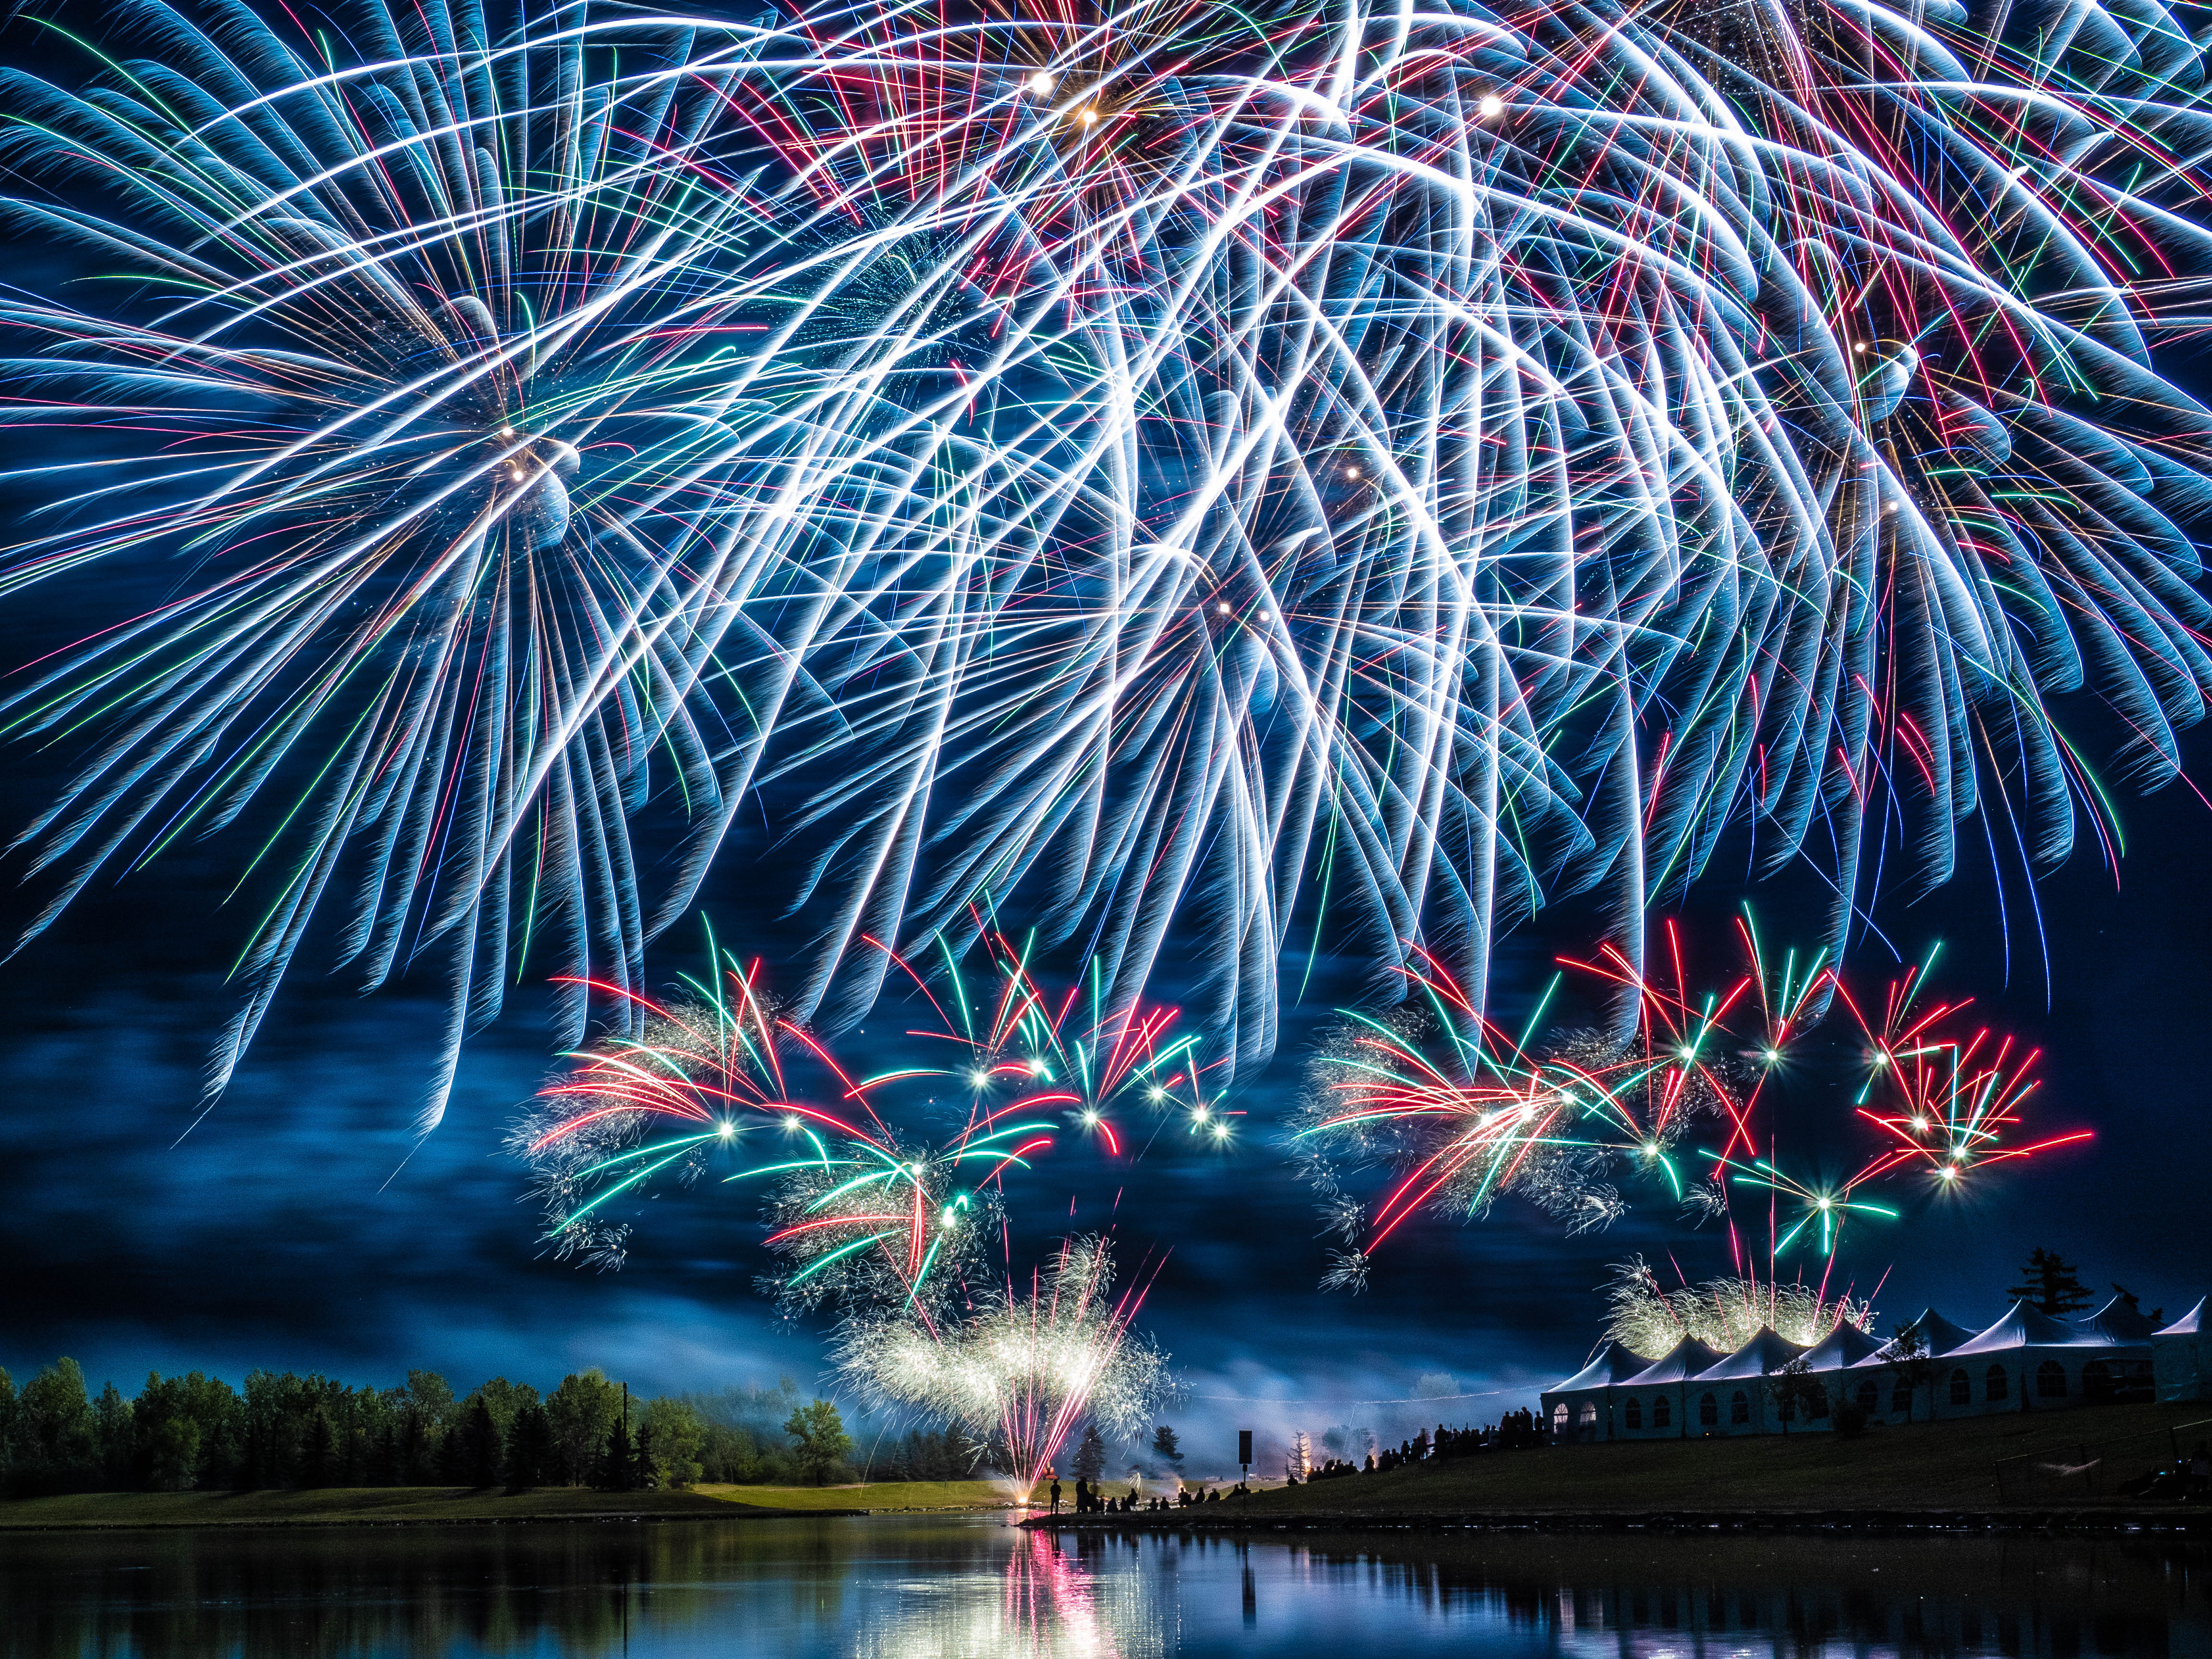 Spain's entry for the Globalfest 2019 Fireworks Competition in Calgary, Alberta, Canada